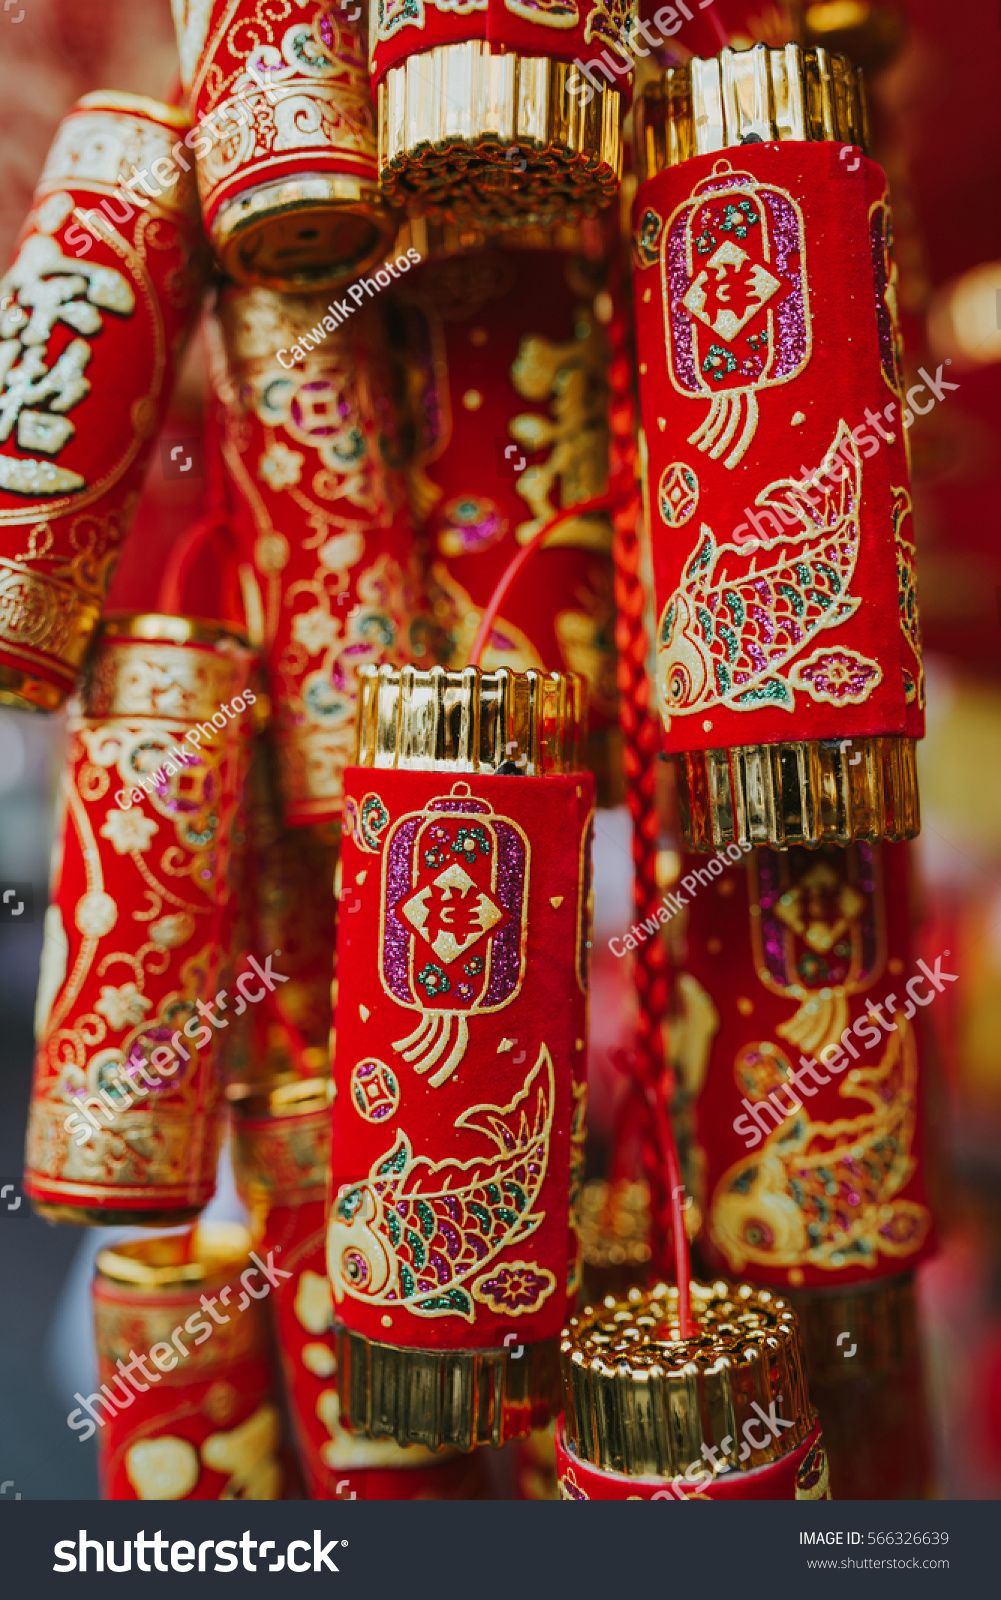 Chinese new year 2017 decorations stock photo 566326639 for Chinese decorations